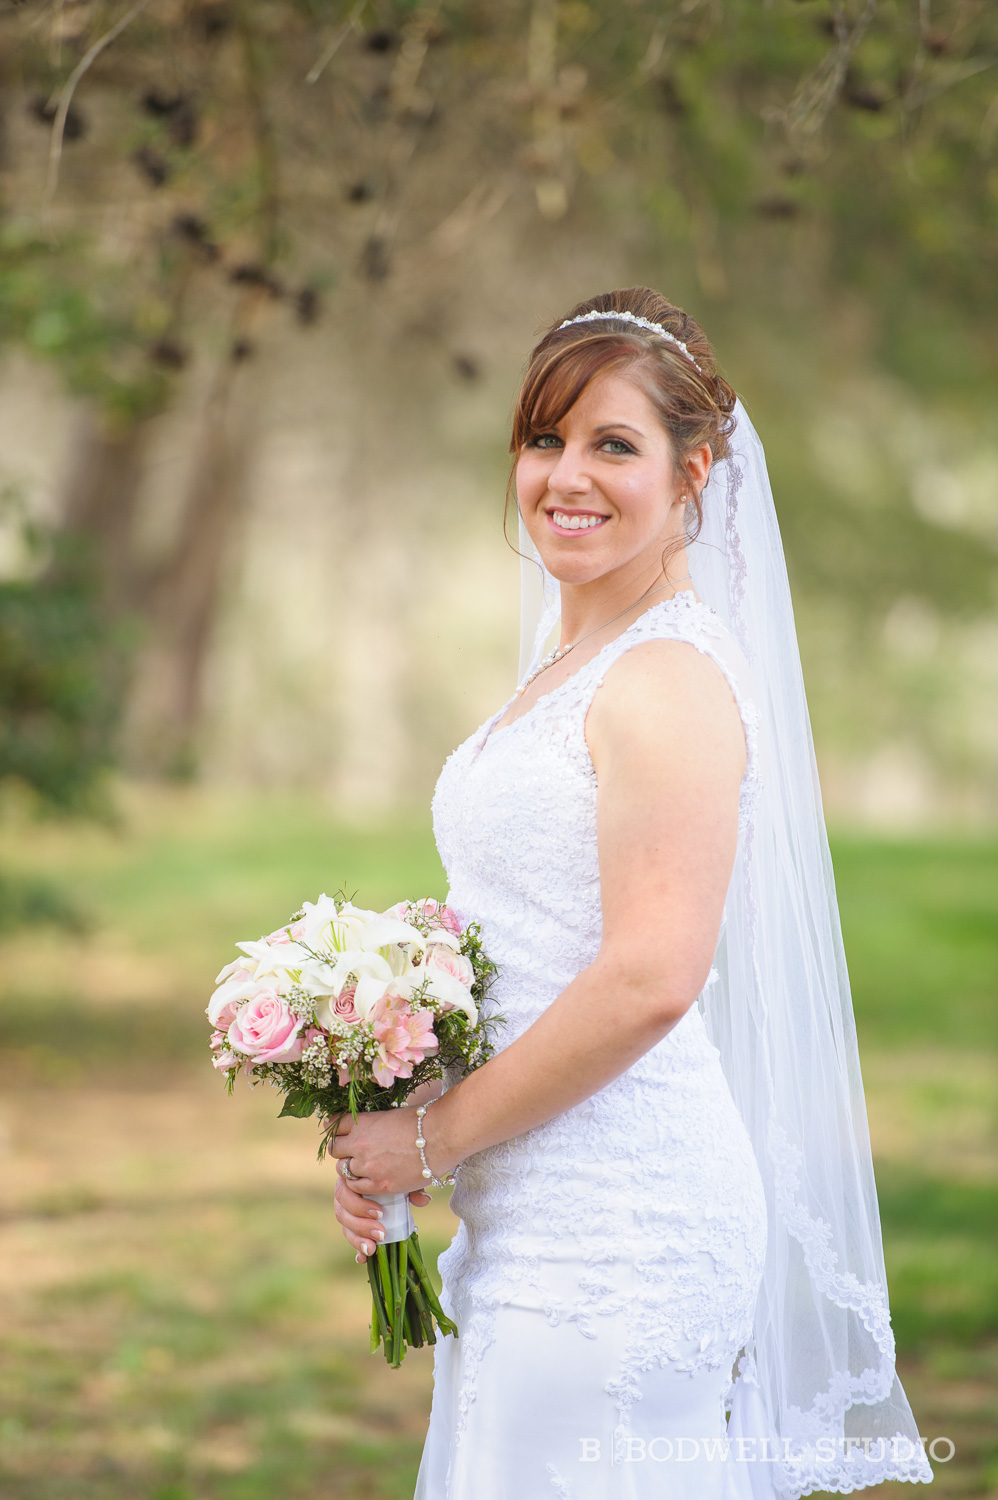 Grogg_Wedding_Blog_011.jpg